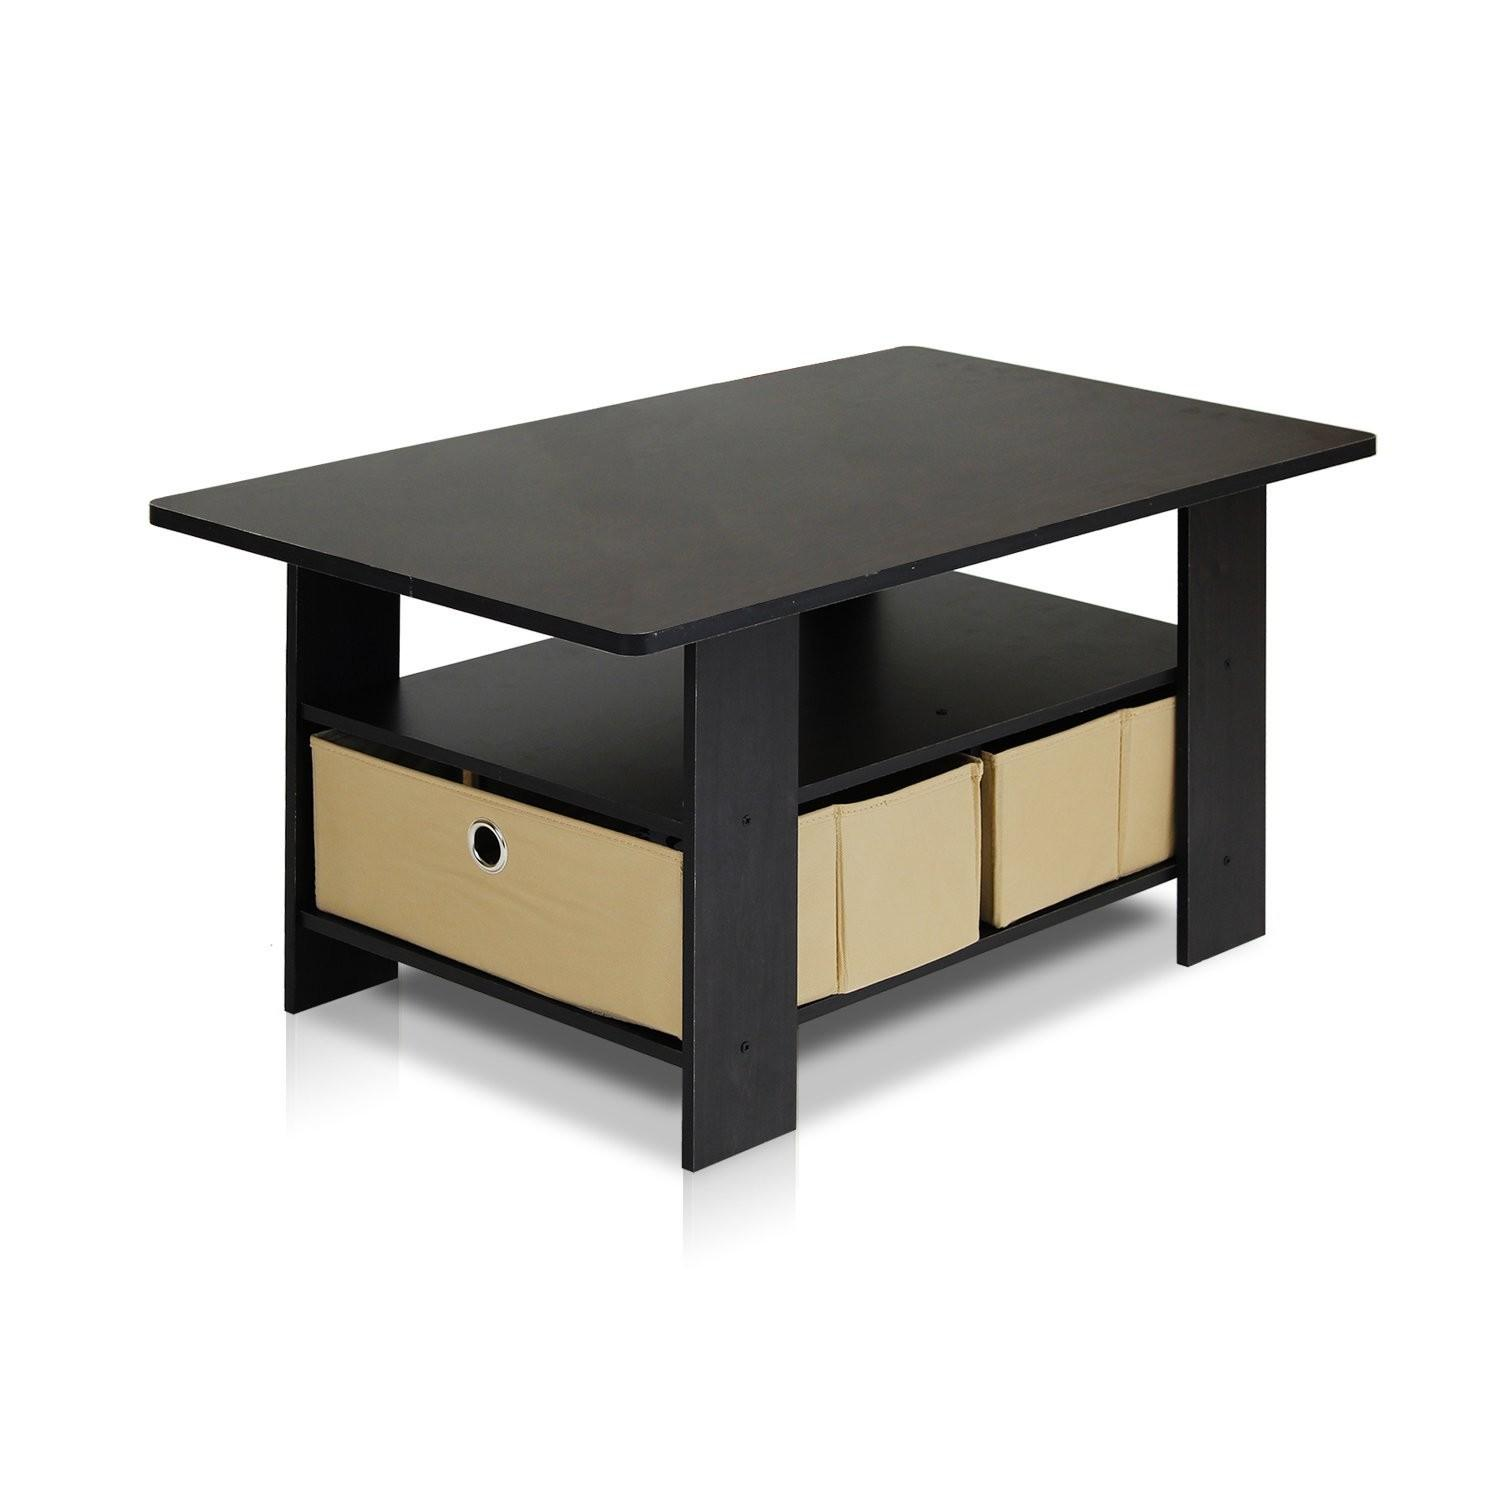 Small Coffee Table Living Room Furniture Dorm Desk Home